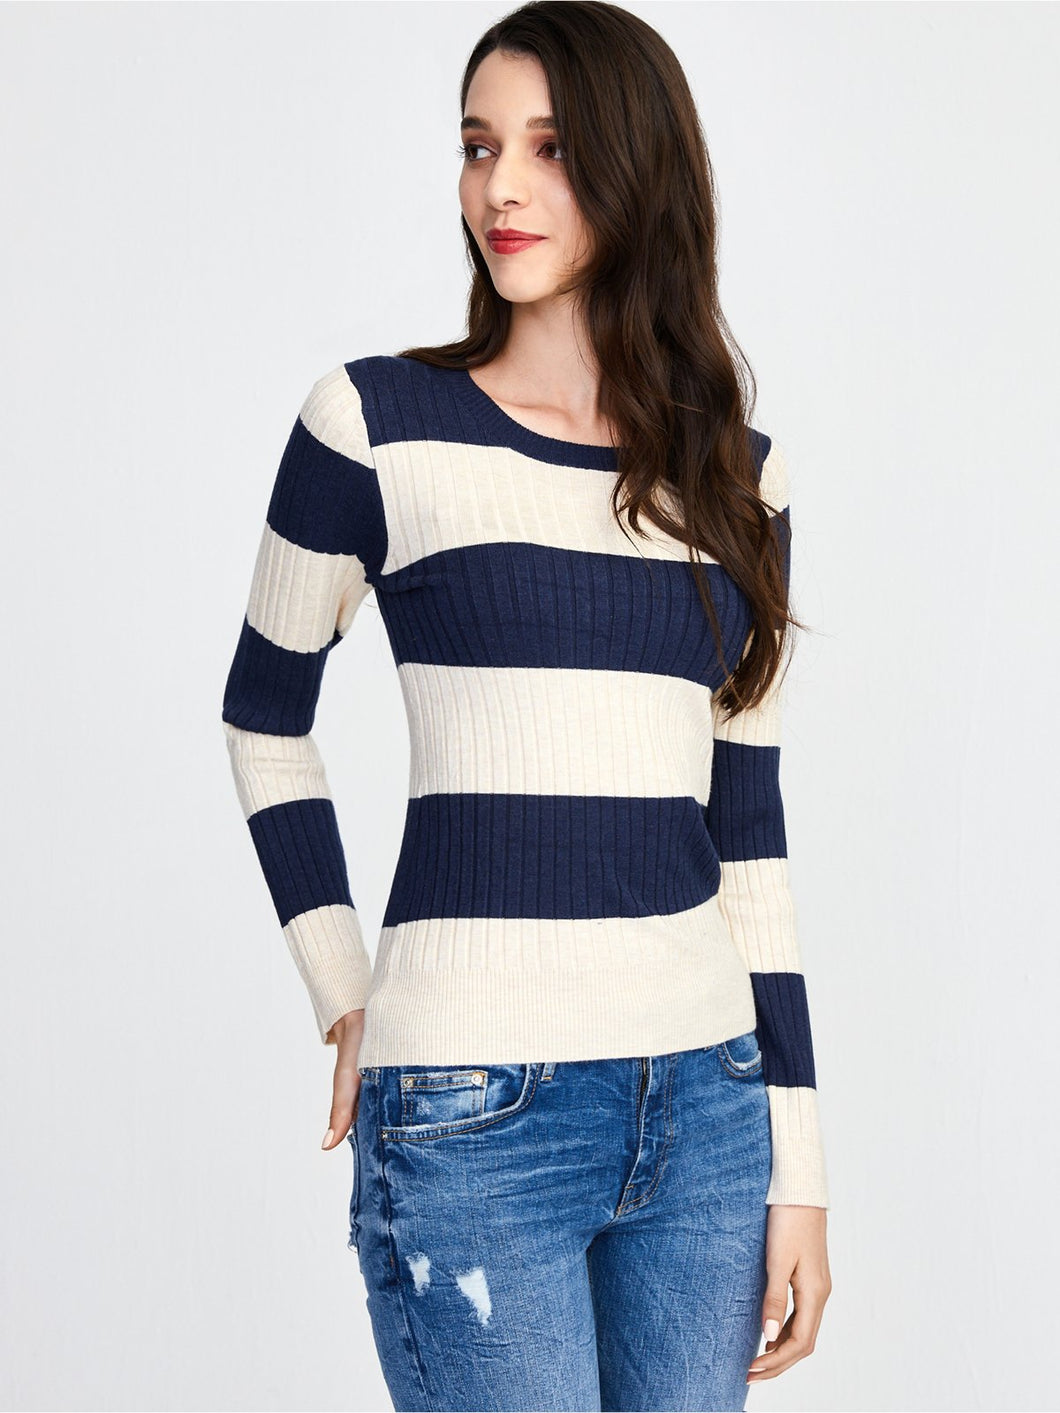 Rugby Stripe Mock Neck